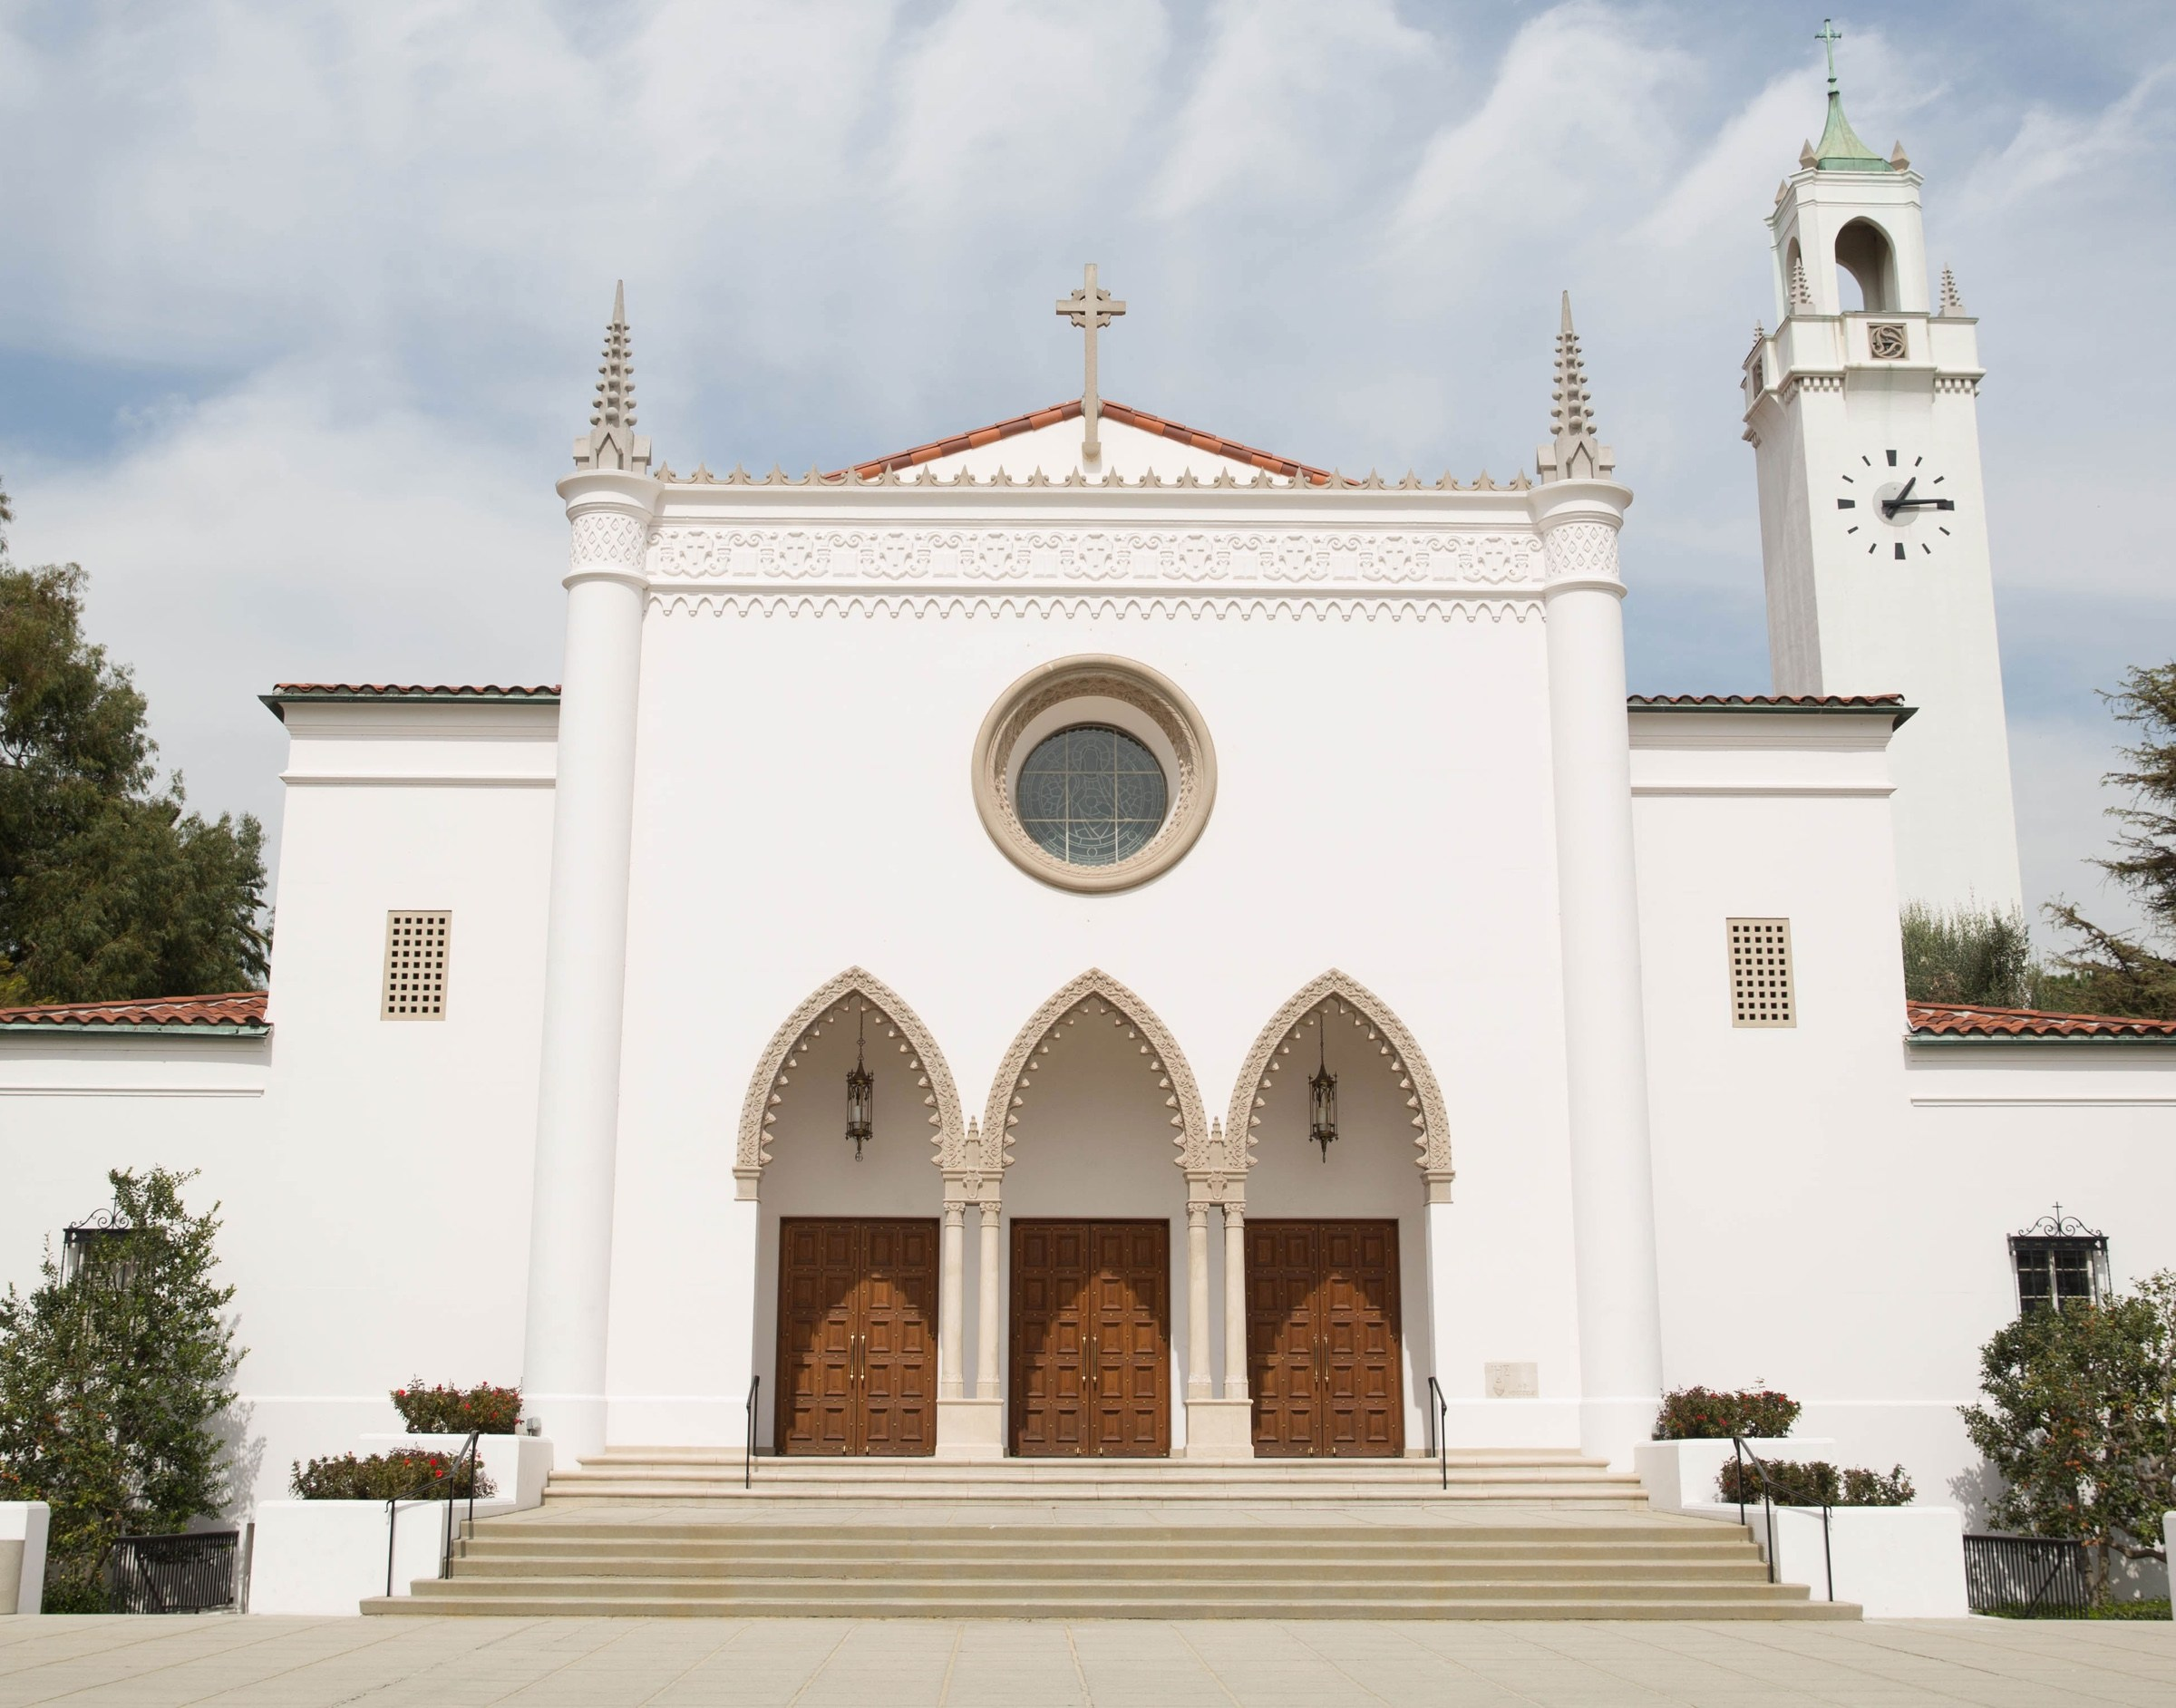 Chapel from the front